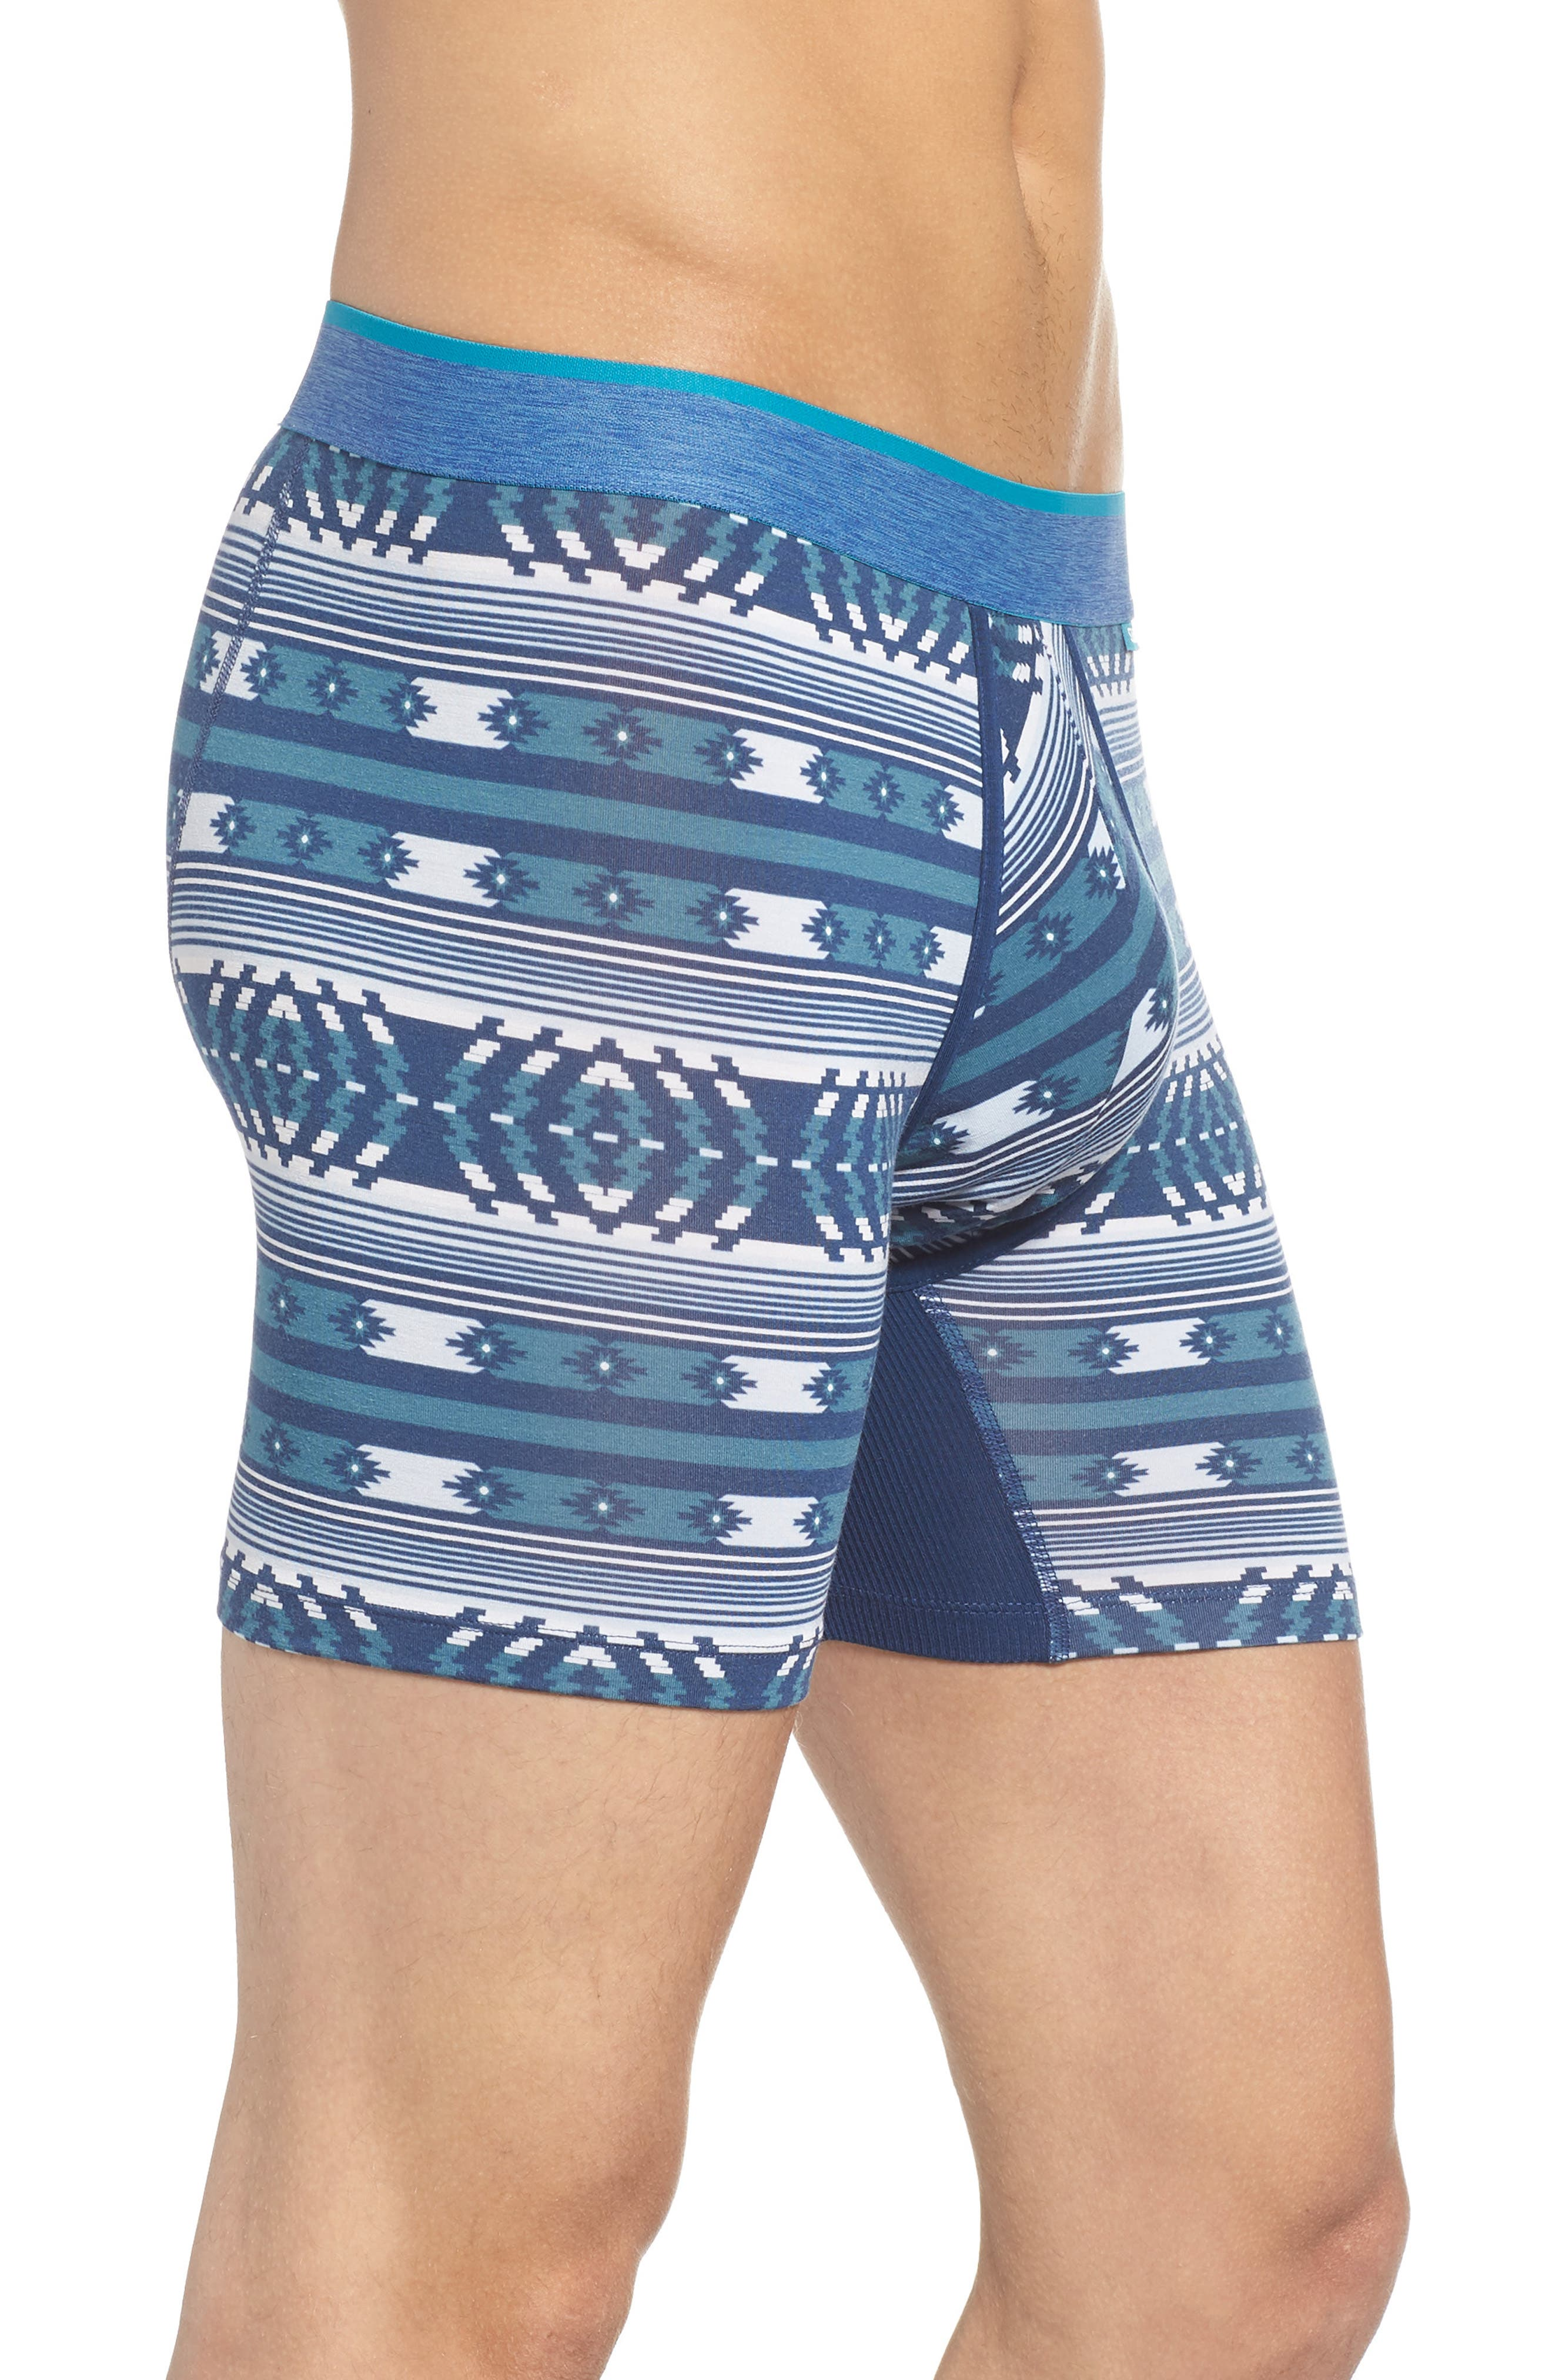 Lightning Boxer Briefs,                             Alternate thumbnail 5, color,                             Blue